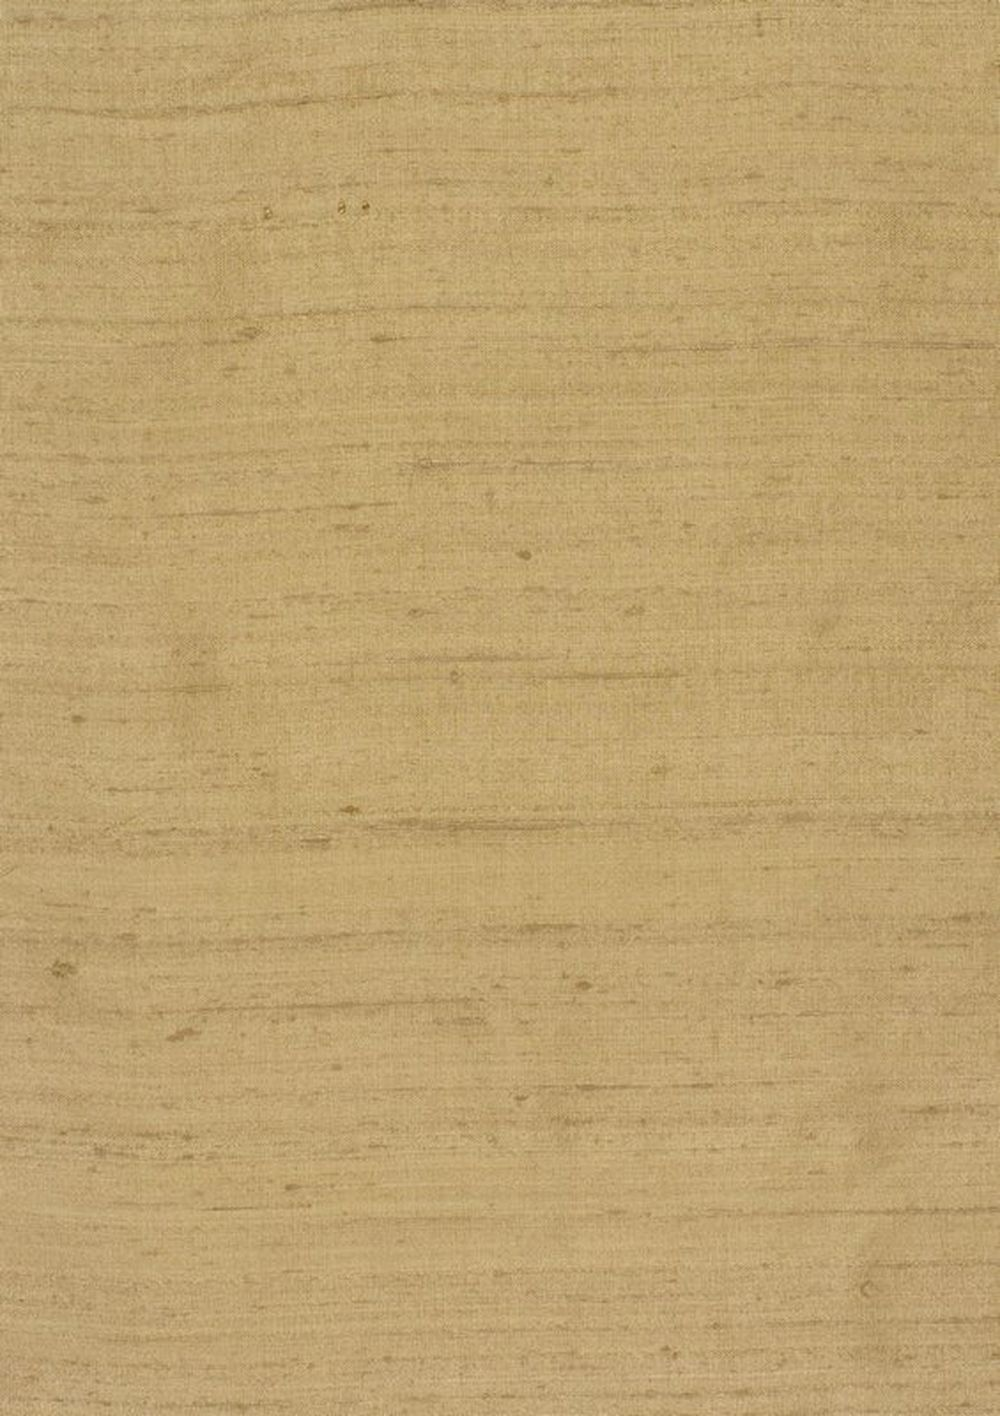 Photo of the fabric Indulgence Jute-017 swatch by Zepel. Use for Curtains. Style of Plain